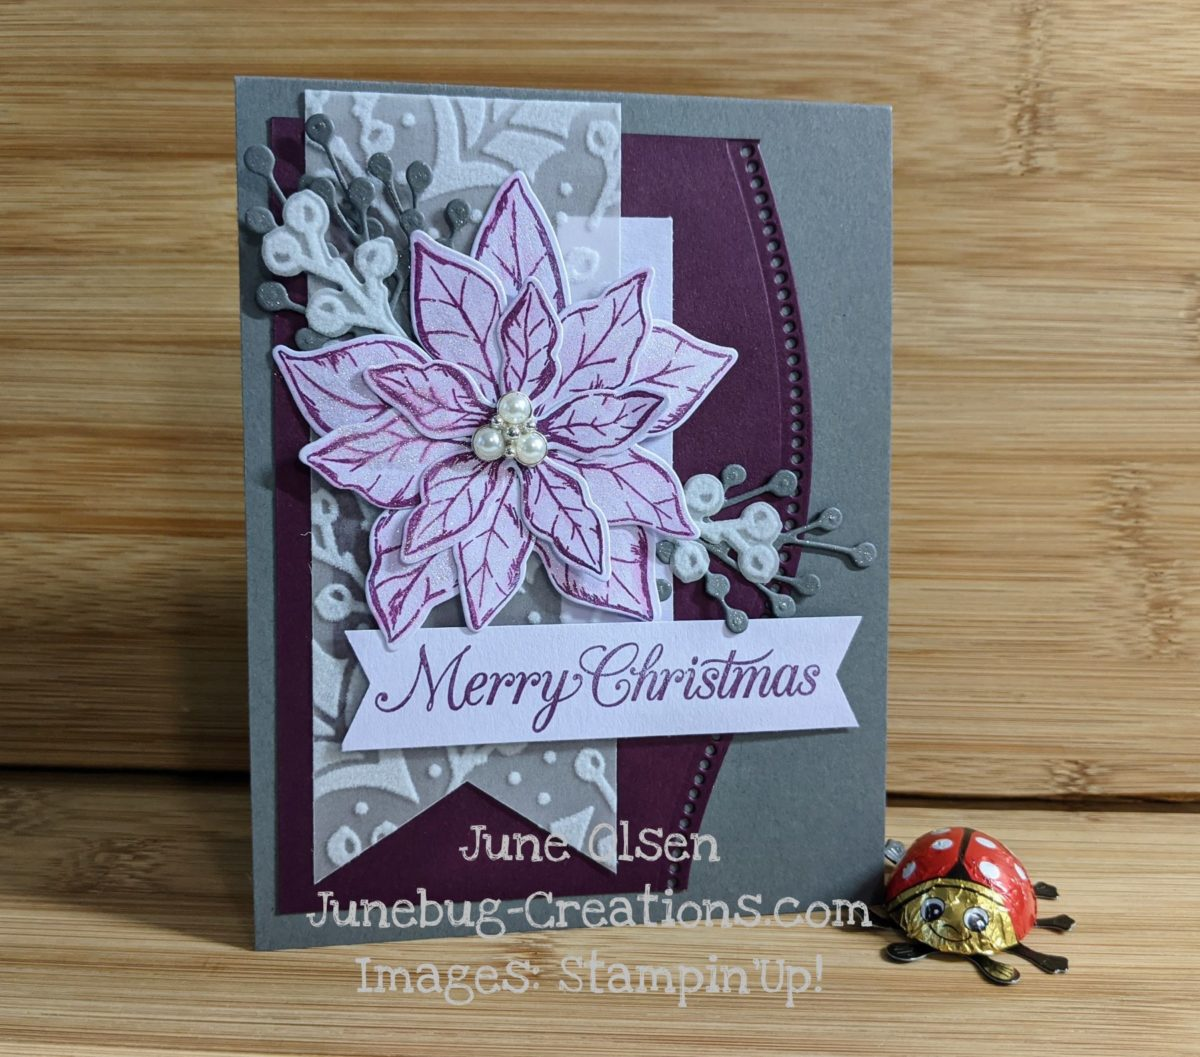 Junebug Creations Nontraditional Poinsettia card